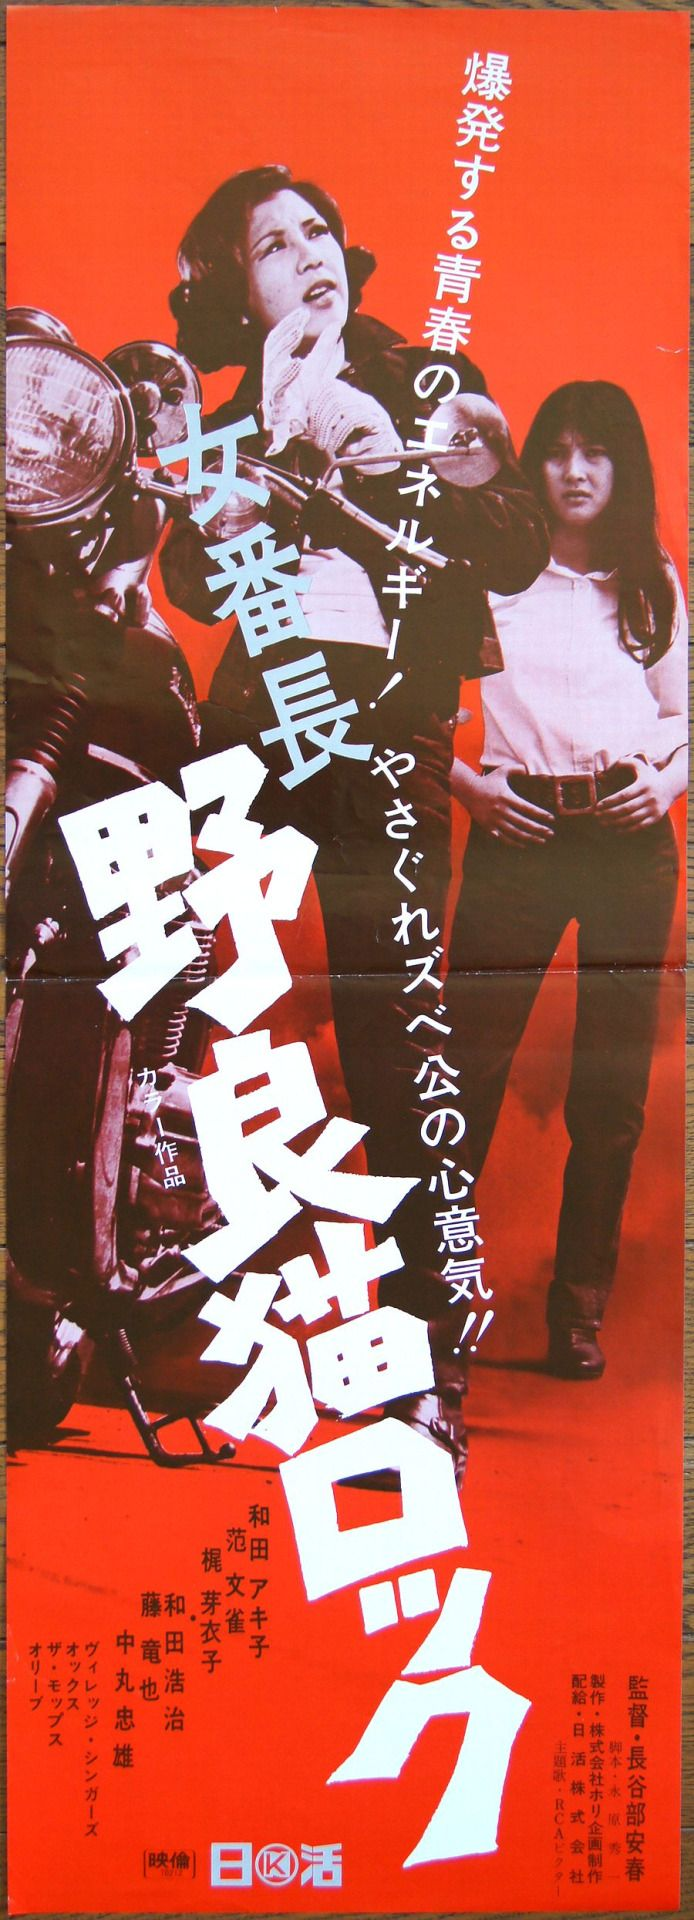 fuckyeahmeikokaji: Poster for Stray Cat Rock: Delinquent Girl Boss (女番長野良猫ロック), 1970, starring Meiko Kaji (梶芽衣子) and Akiko Wada (和田 アキ子).I recently decided to start another Tumblr blog. It's something I've thought of doing a million times, but never did because I barely have enough time to post a picture every day on this blog. Sometimes while trawling the web for Meiko Kaji stuff, though, I come across cool shit from other Japanese films that I want to share.So, fuck it. Jailhouse41. I…